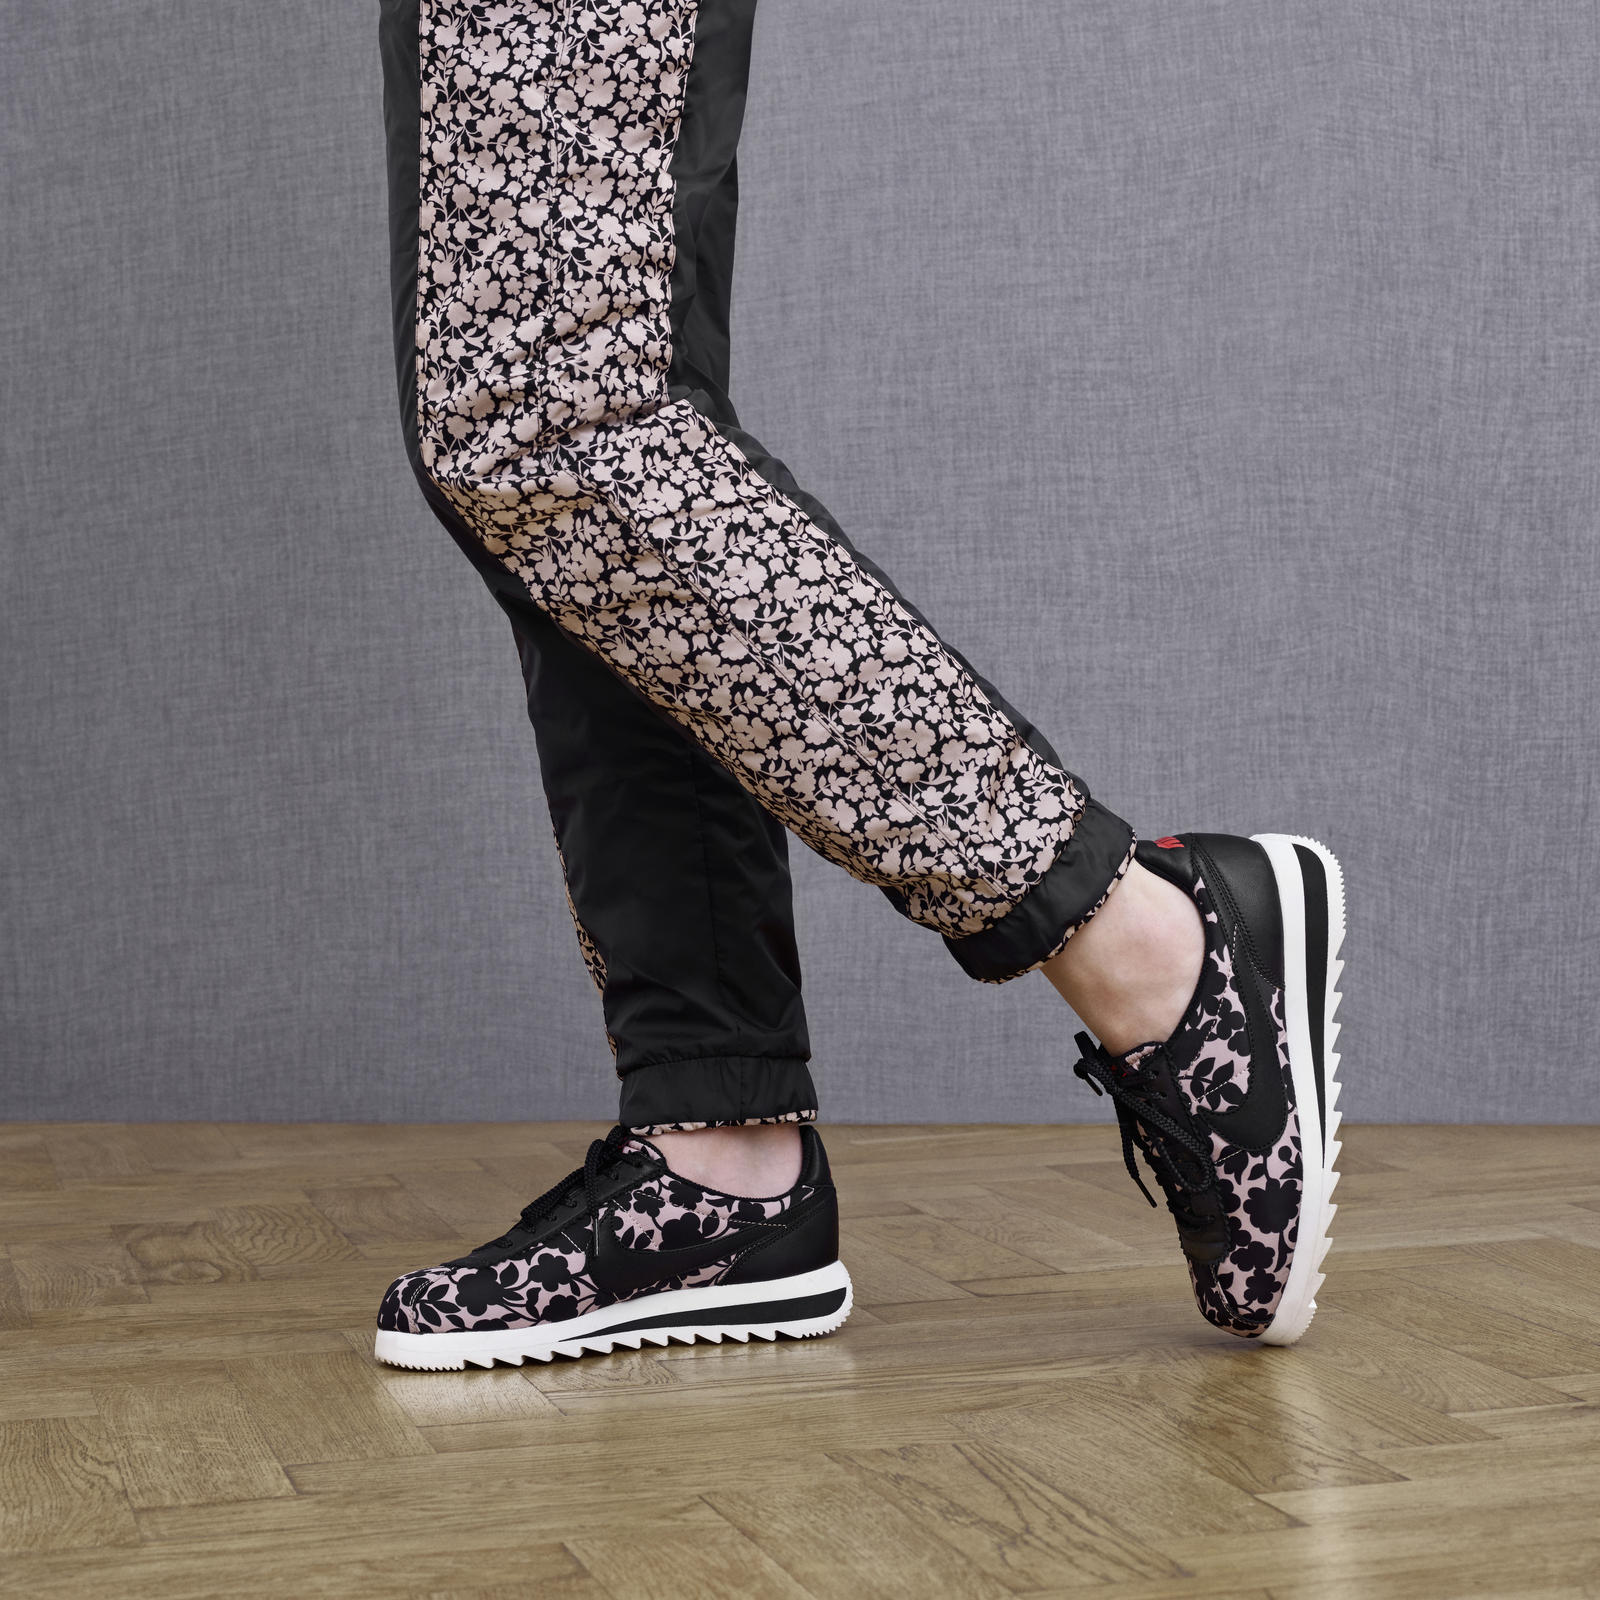 Contemporary Florals Energize New Liberty London x Nike